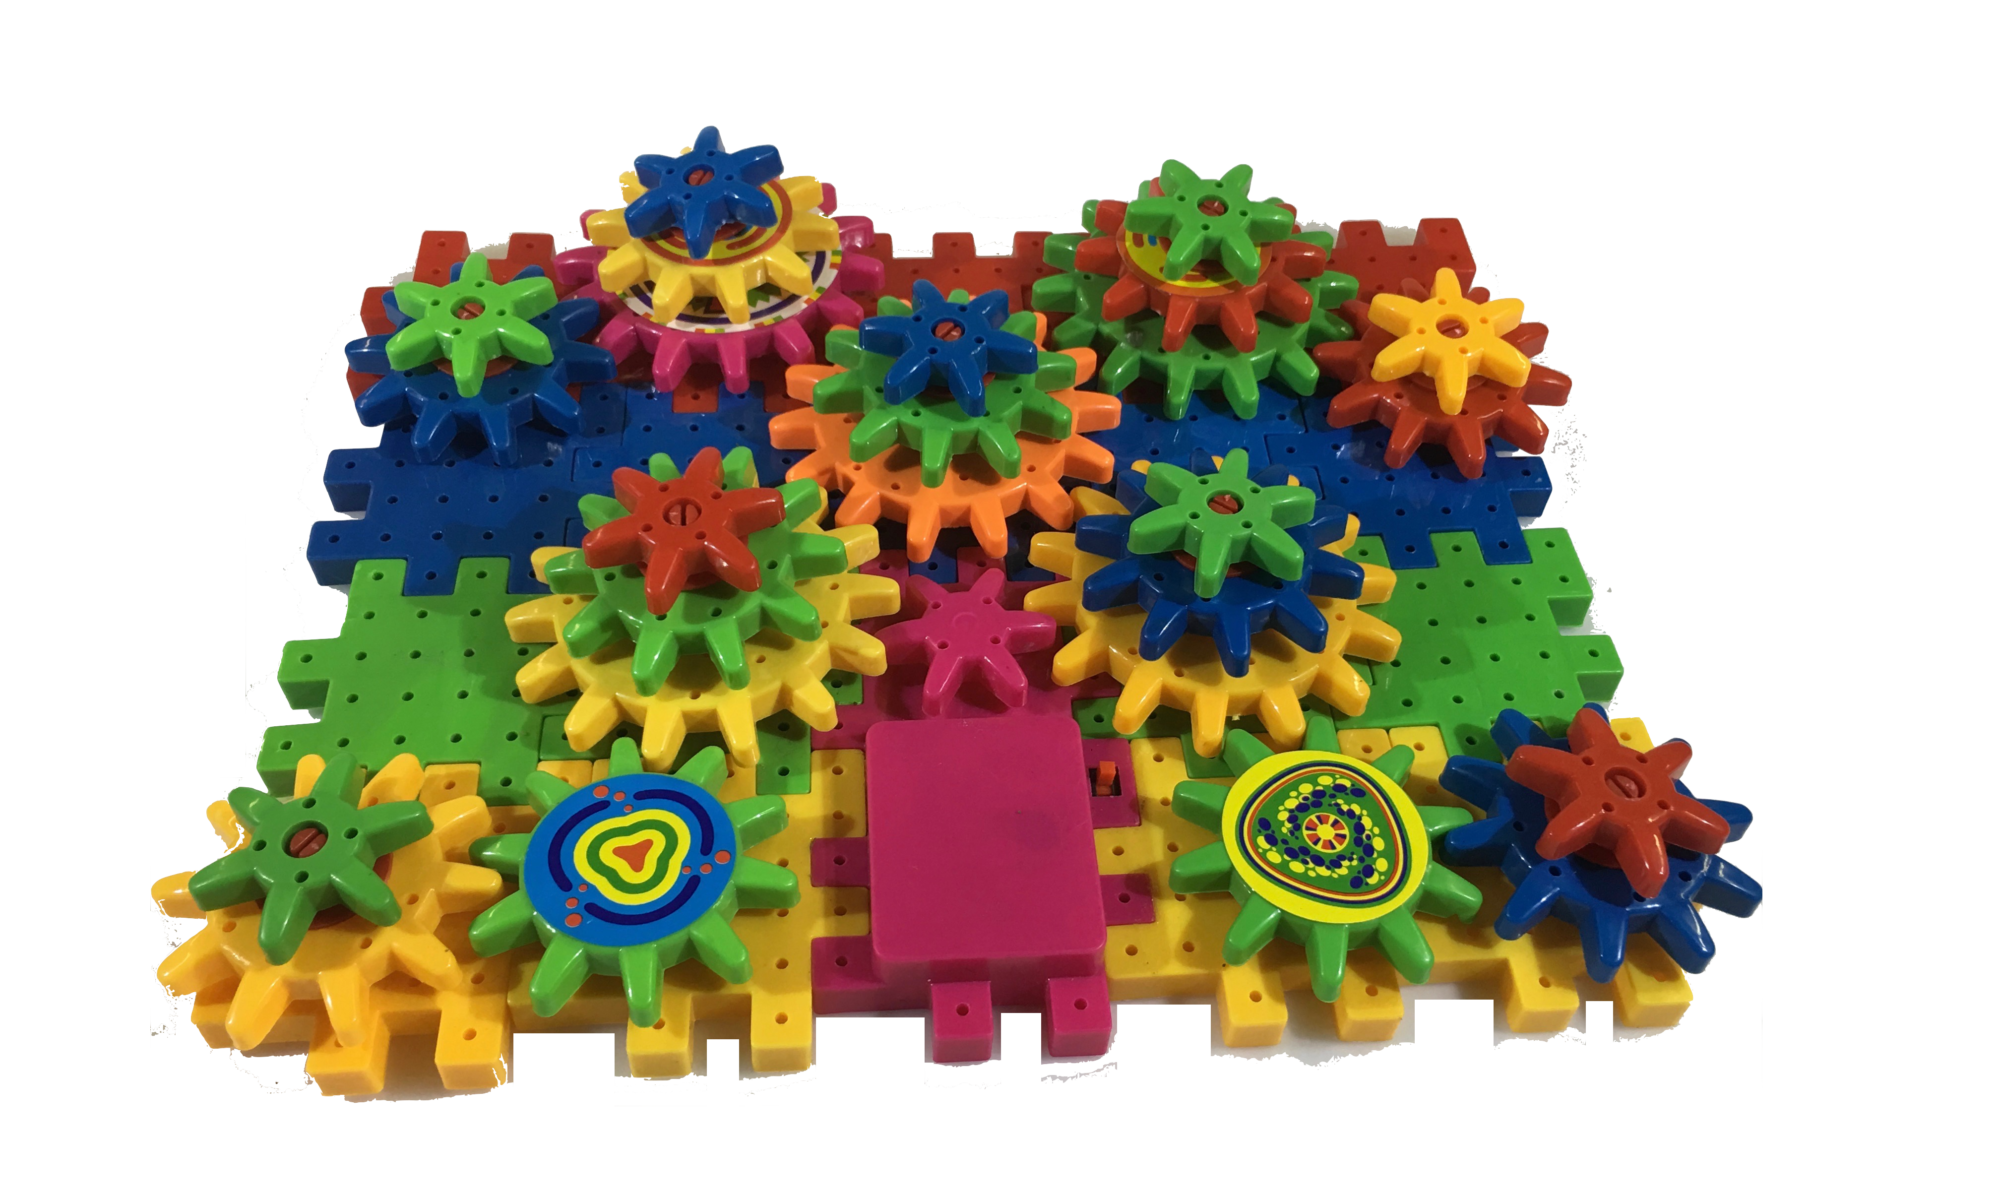 81 Pc JUNIOR Gears building set – Change Maker Products